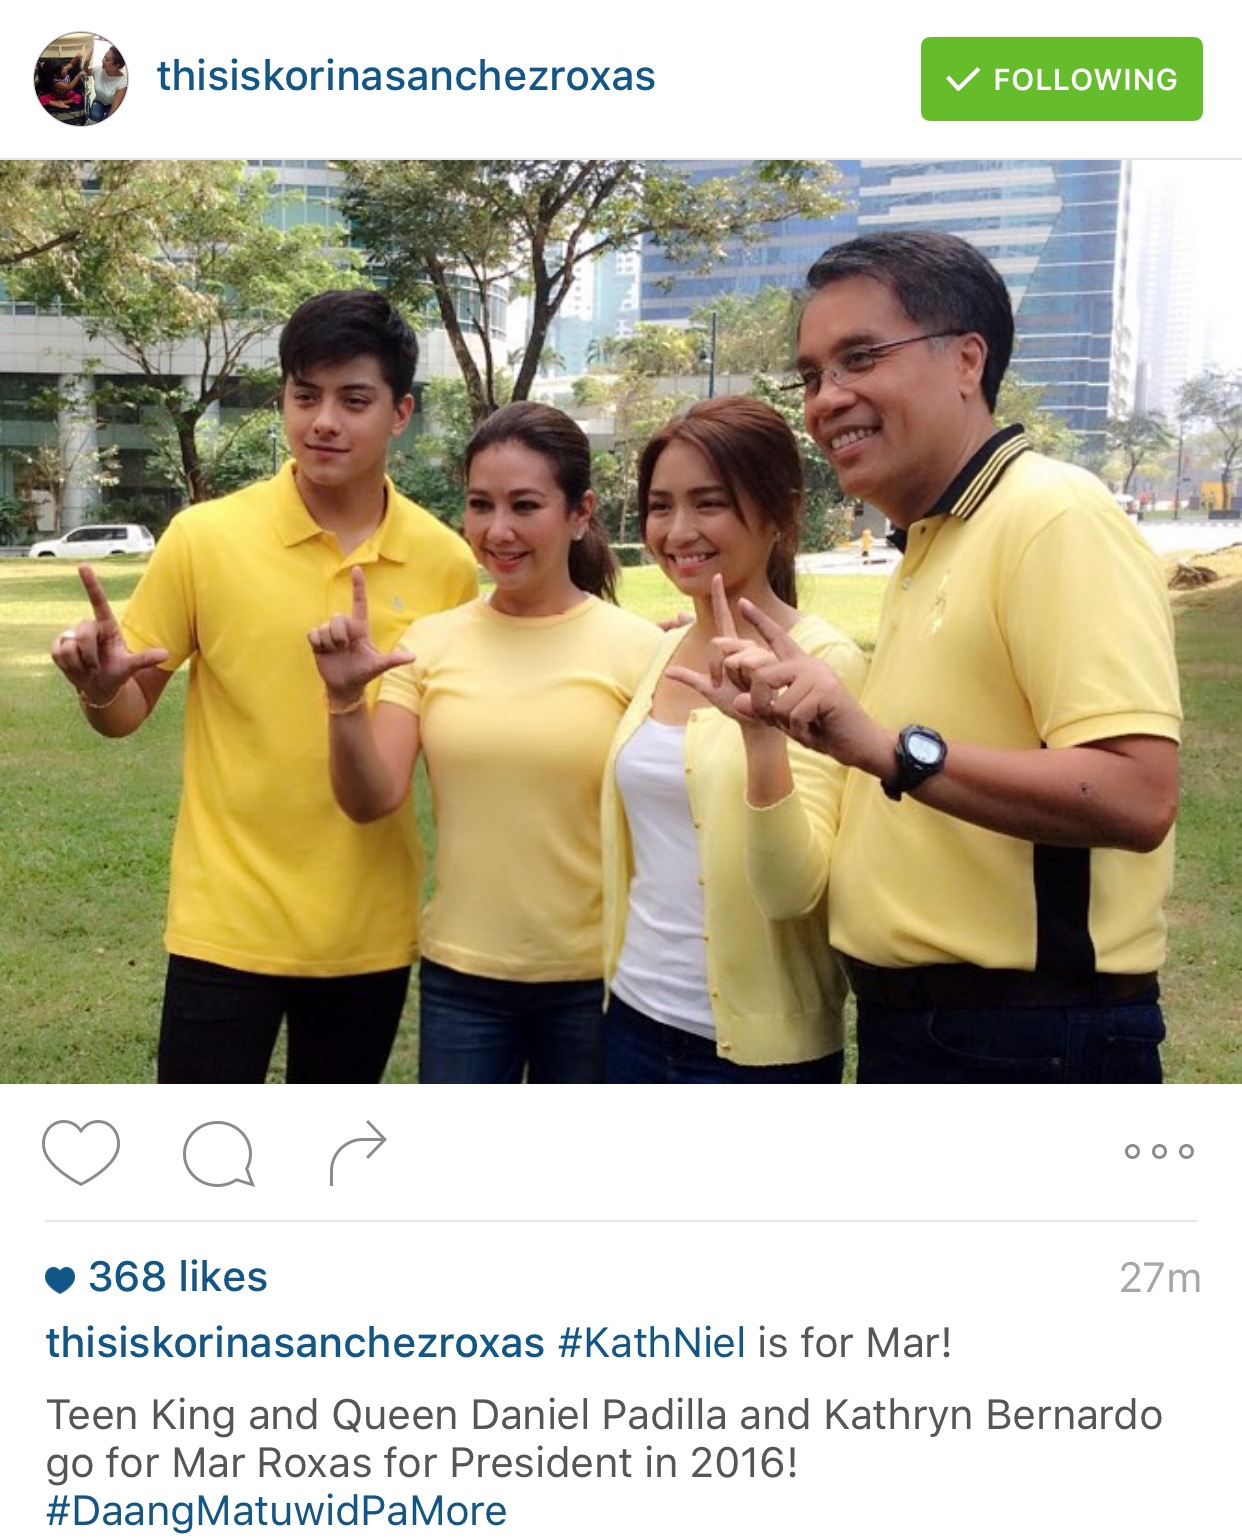 KathNiel is for Mar Roxas